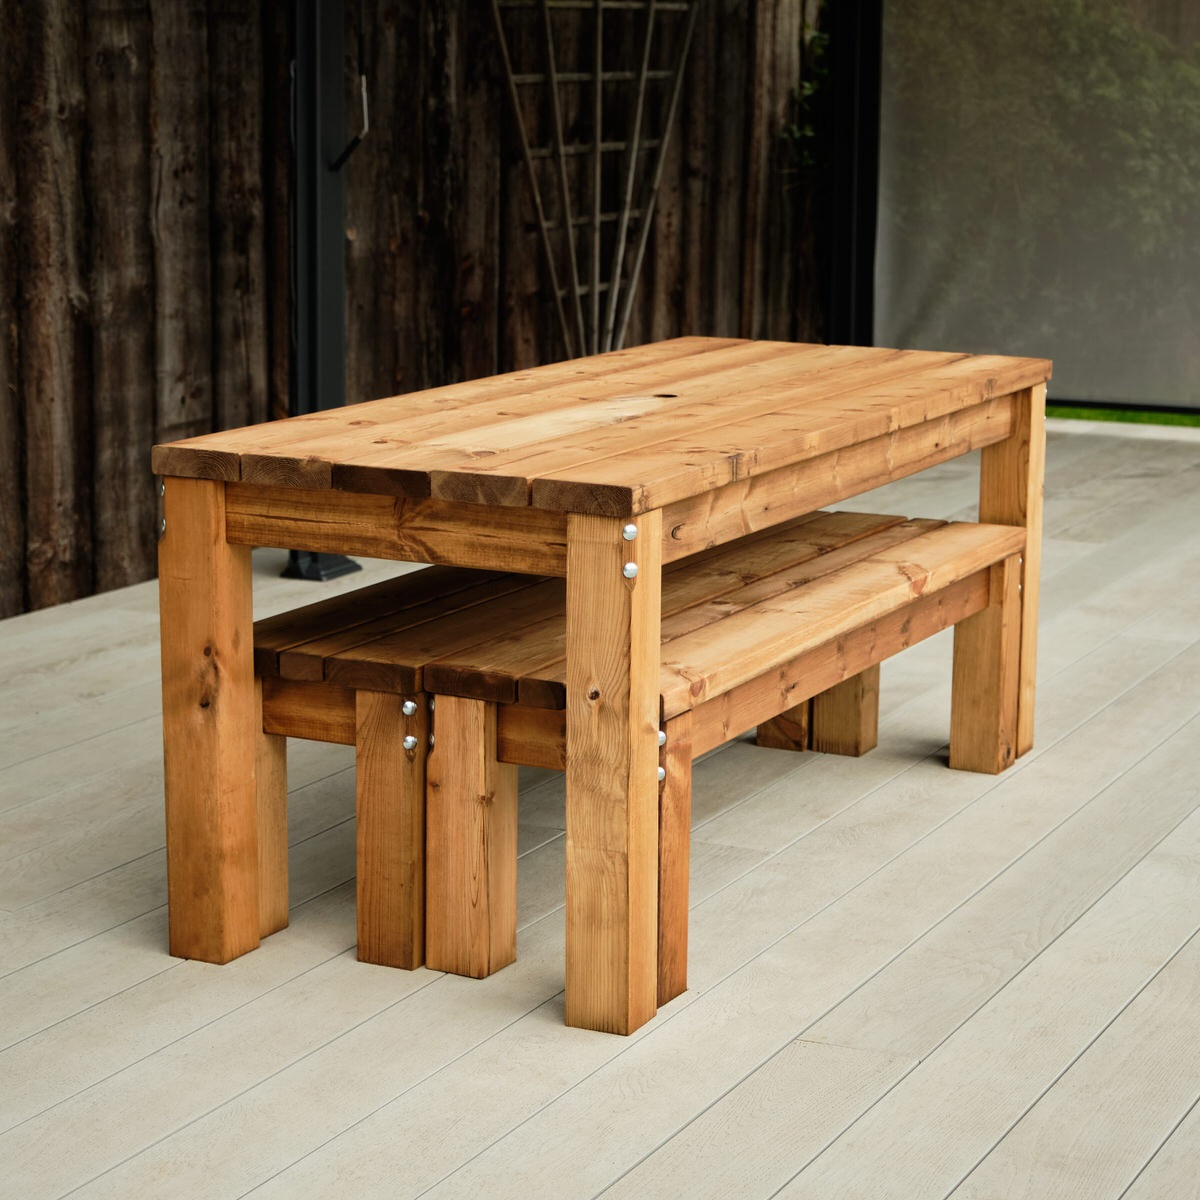 Wooden Rectangular Table And Bench Set, Outdoor Timber Dining Table With Bench Seats